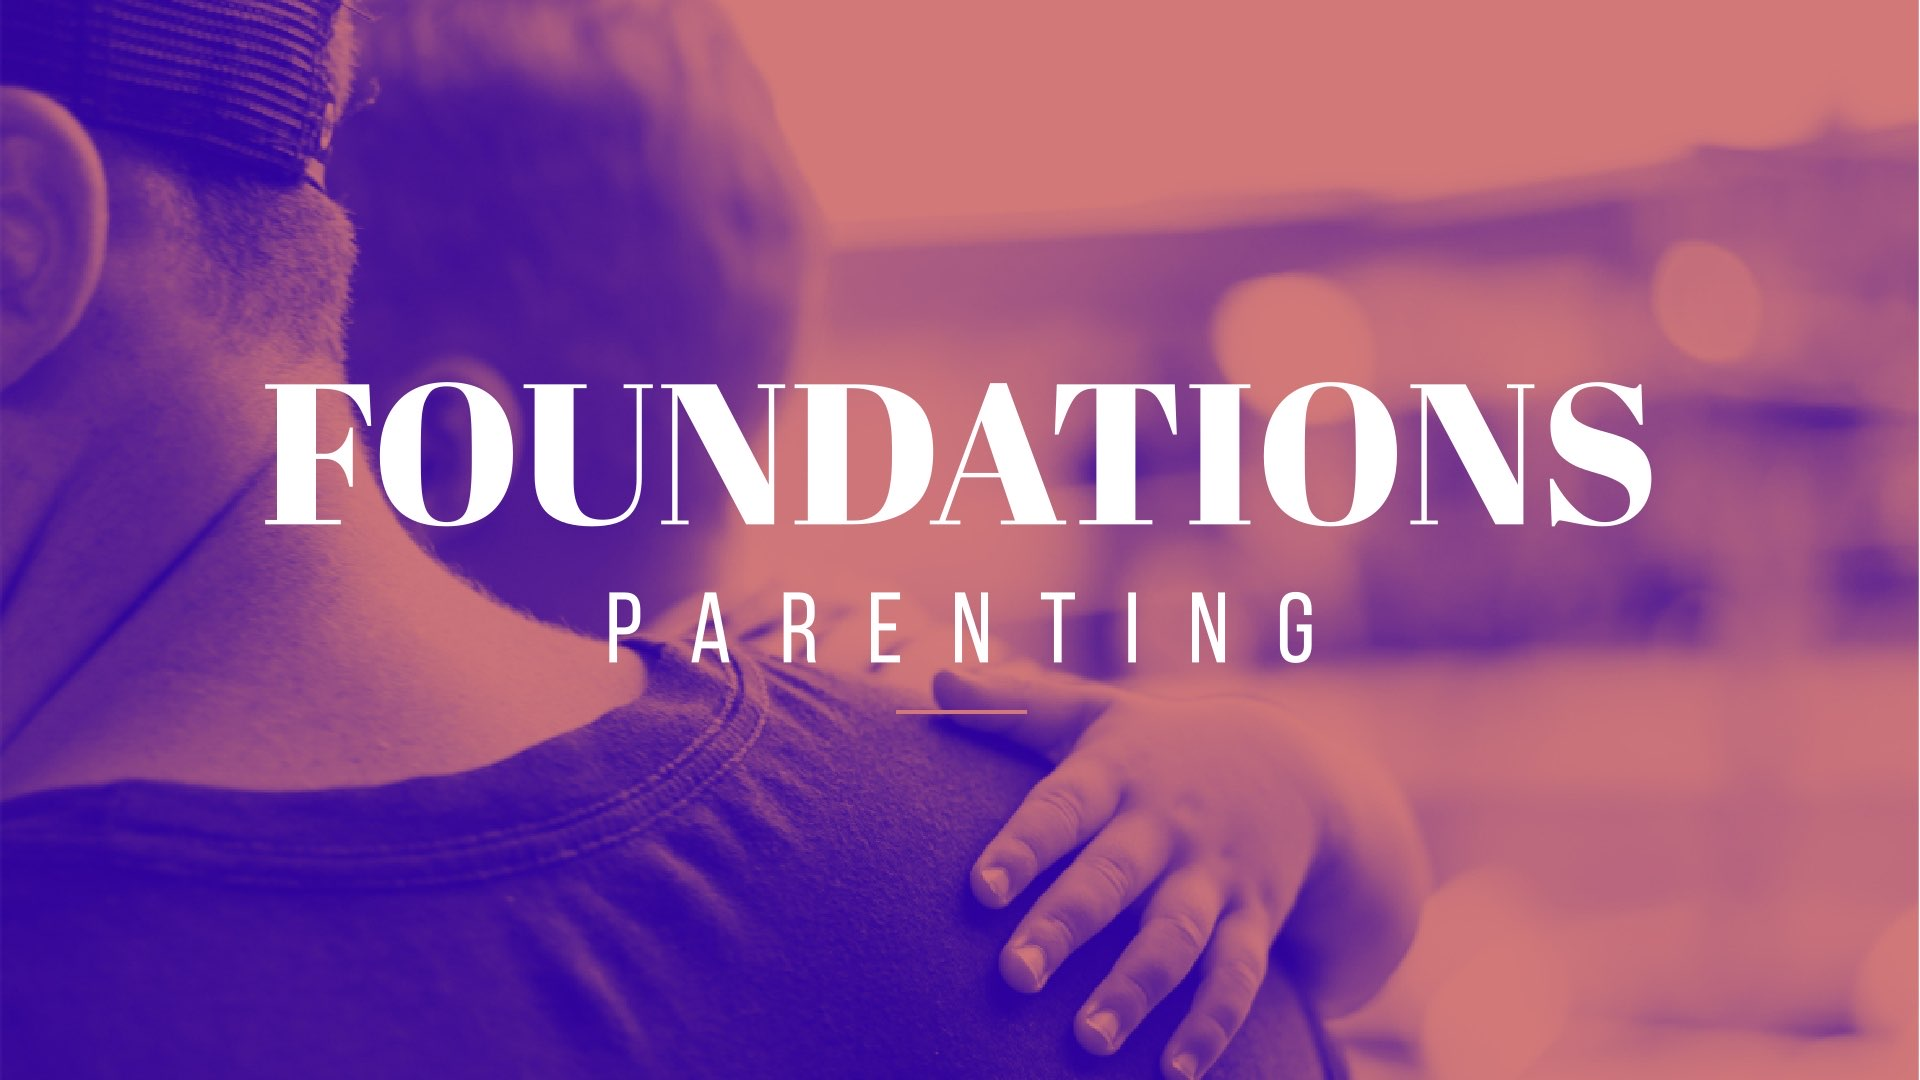 Foundations: Parenting